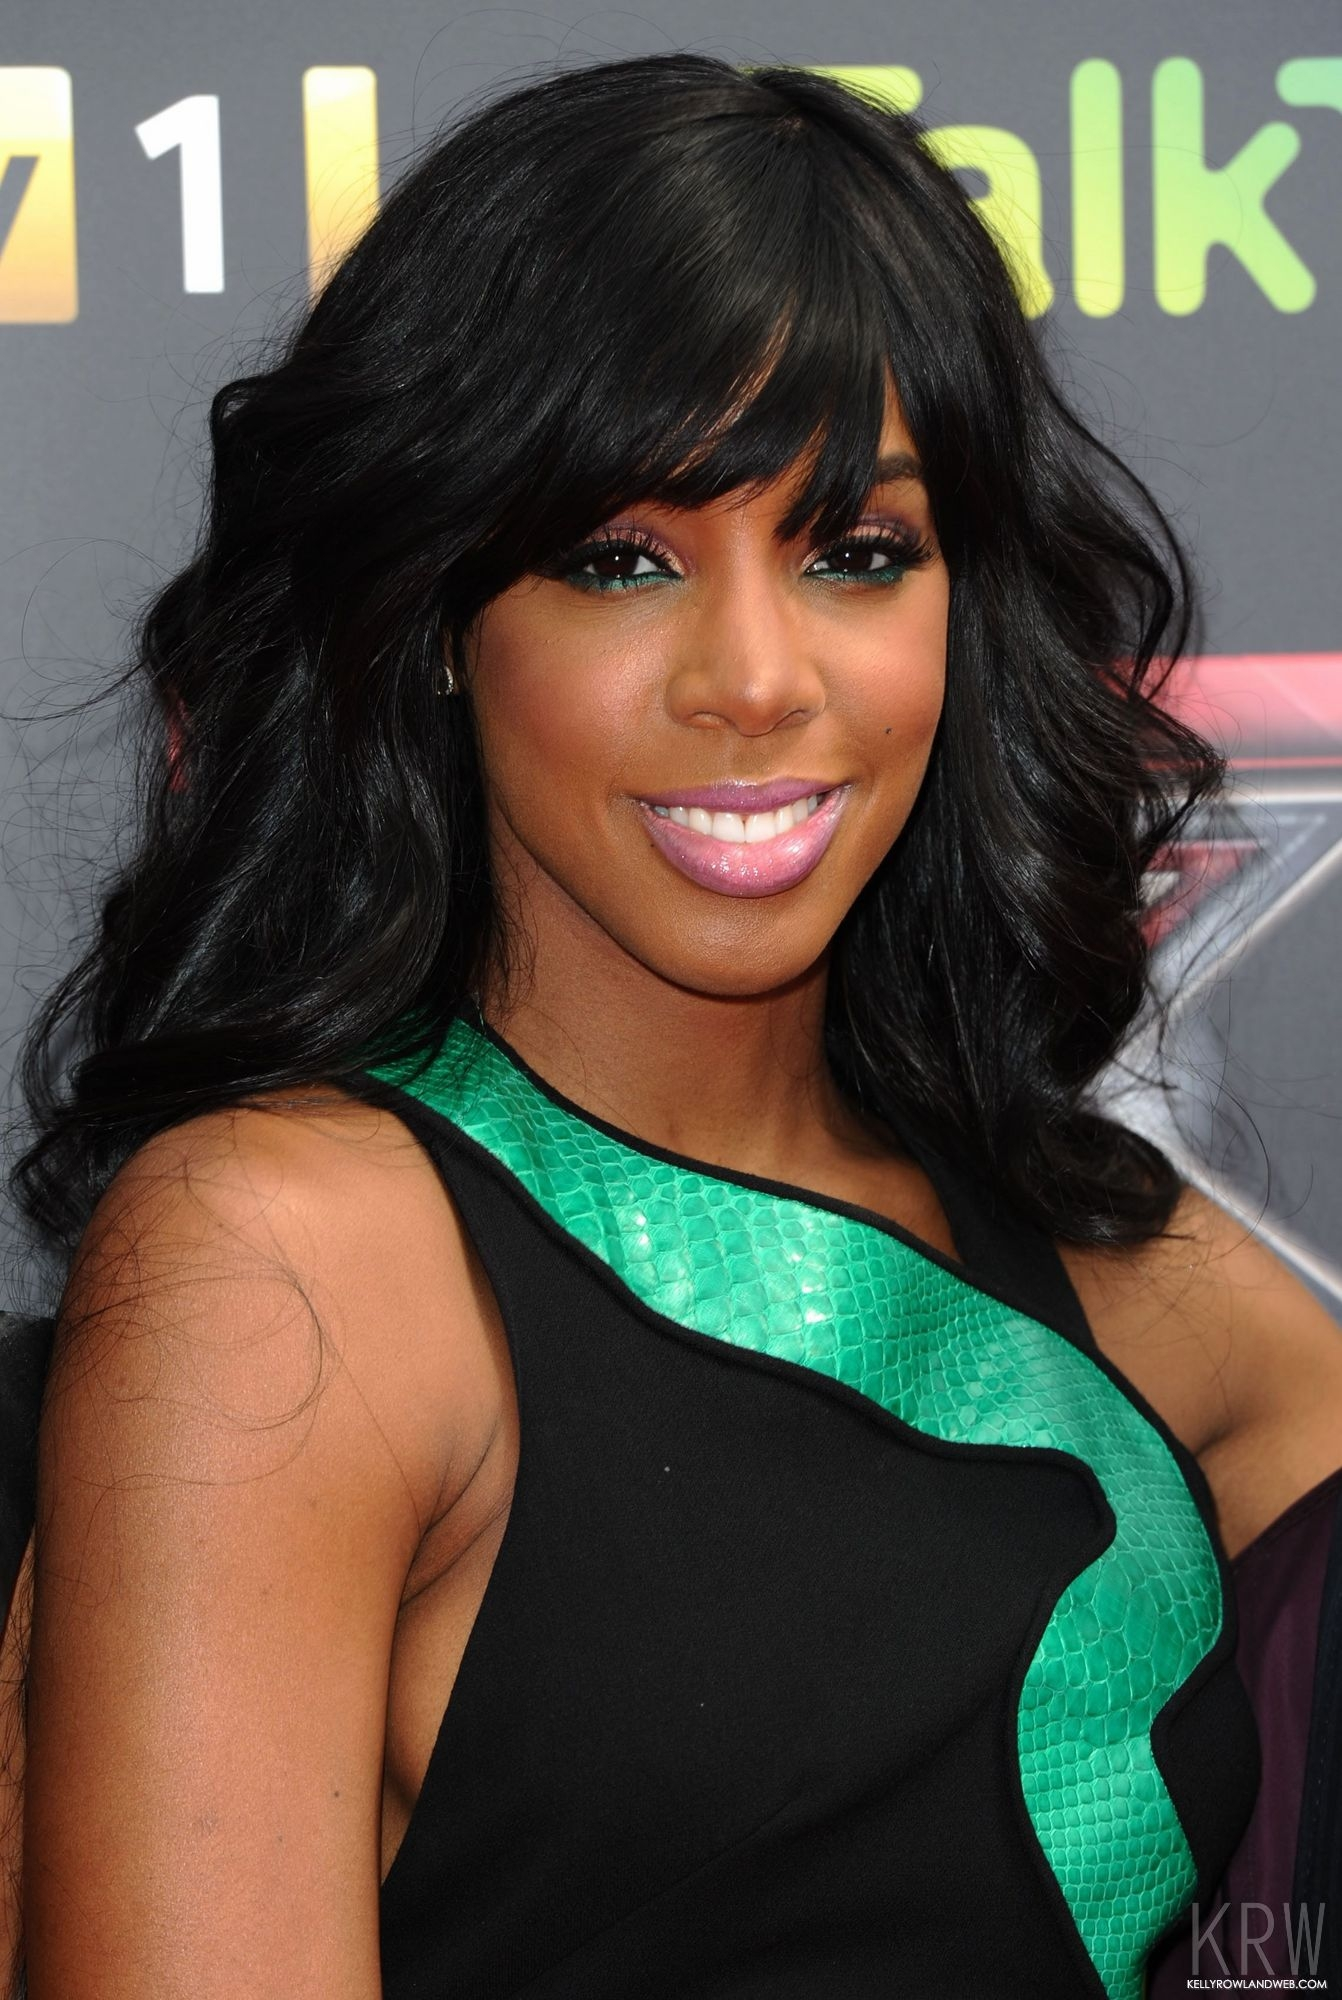 Kelly Rowland - Wallpaper